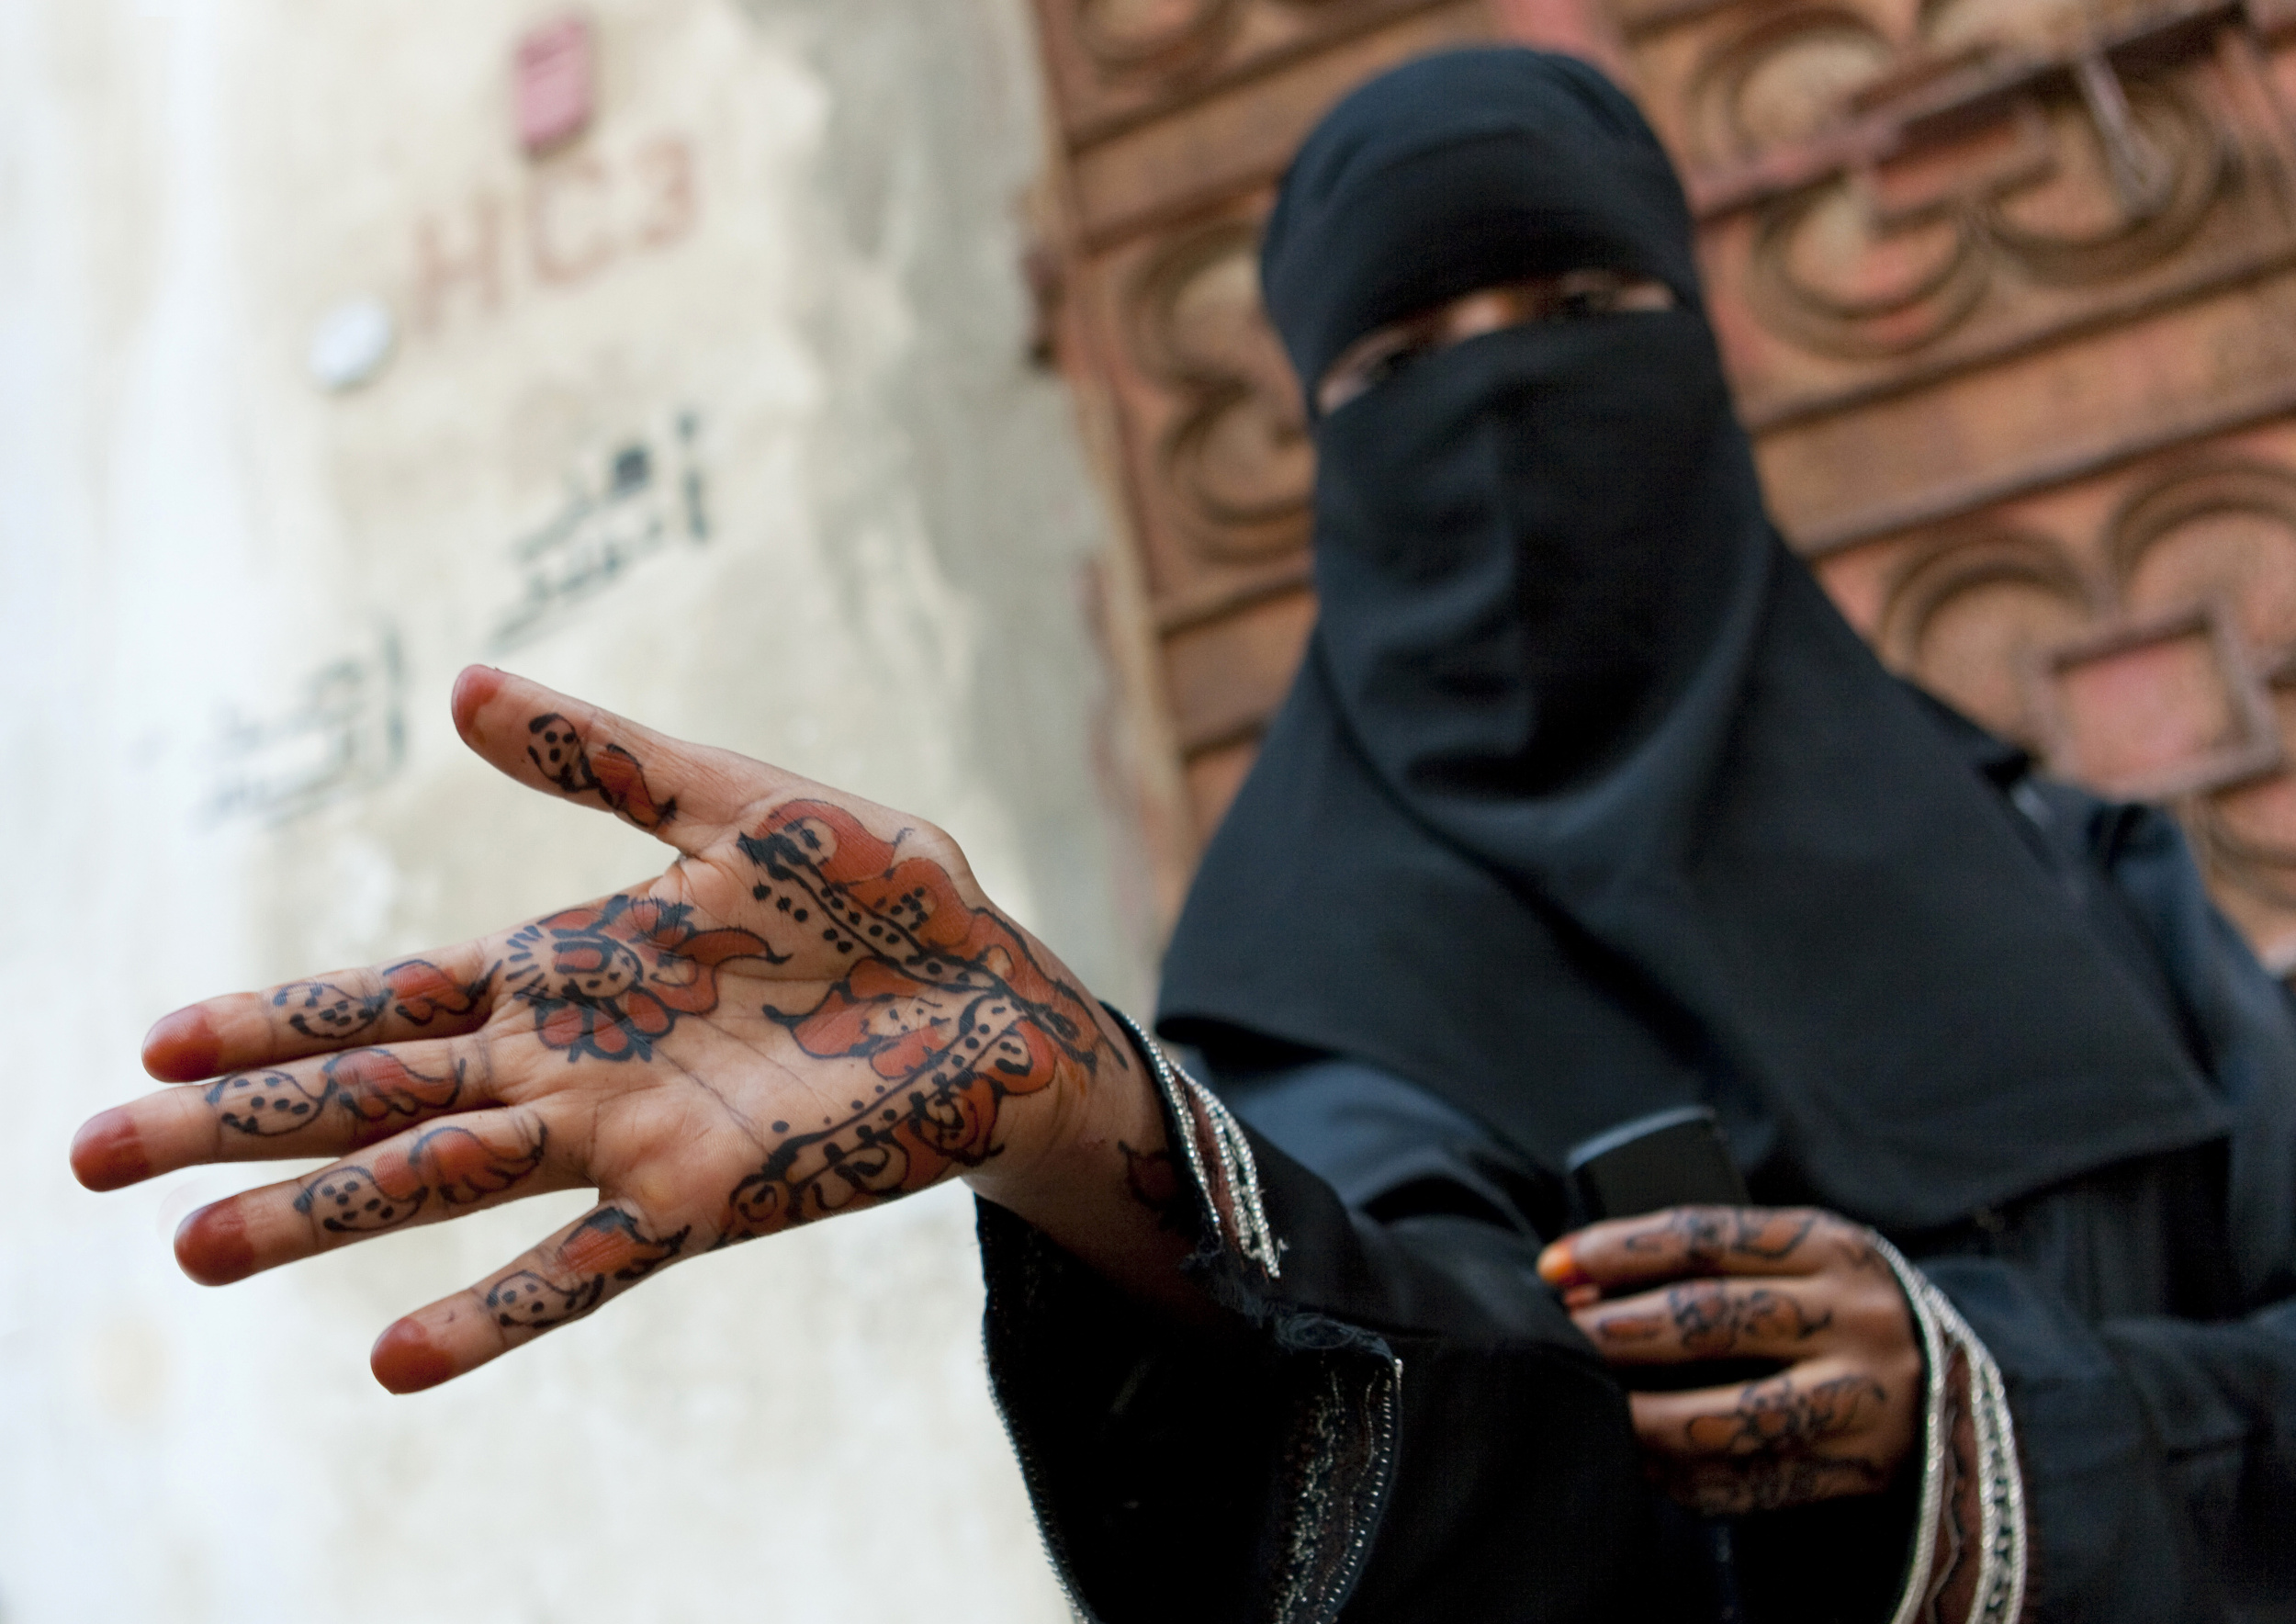 A Somali woman shows a henna design on her hand. The photographer said that during his time there, he rarely saw women out in public.